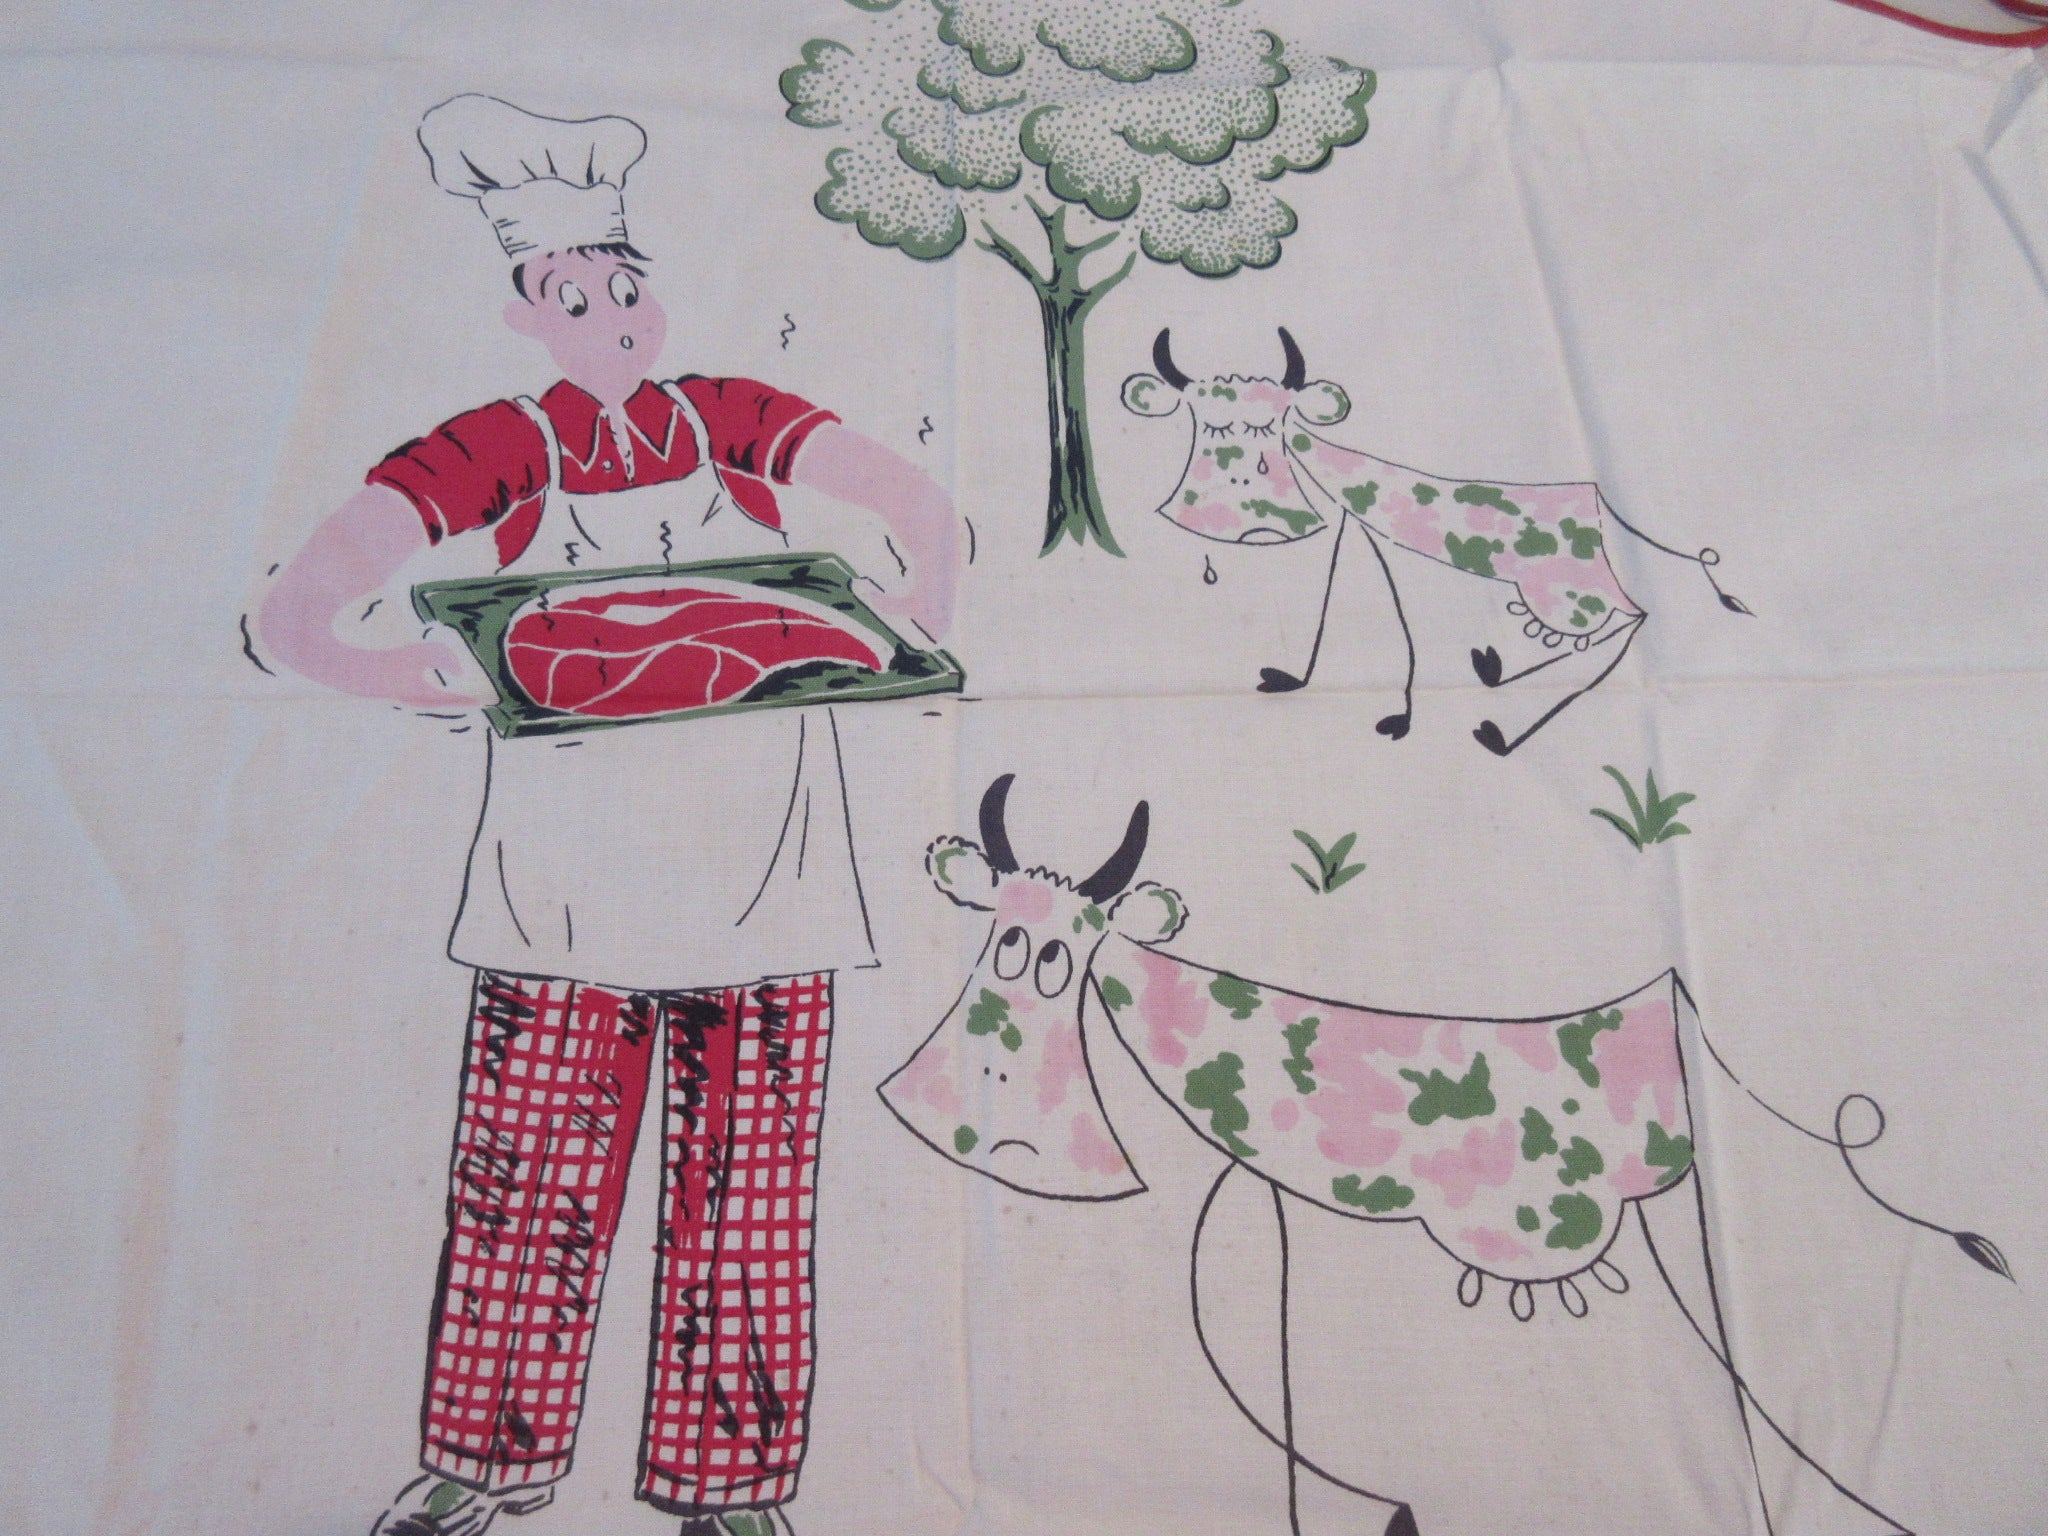 Sad Cow Steak Grilling BBQ Barbecue Apron Vintage Printed